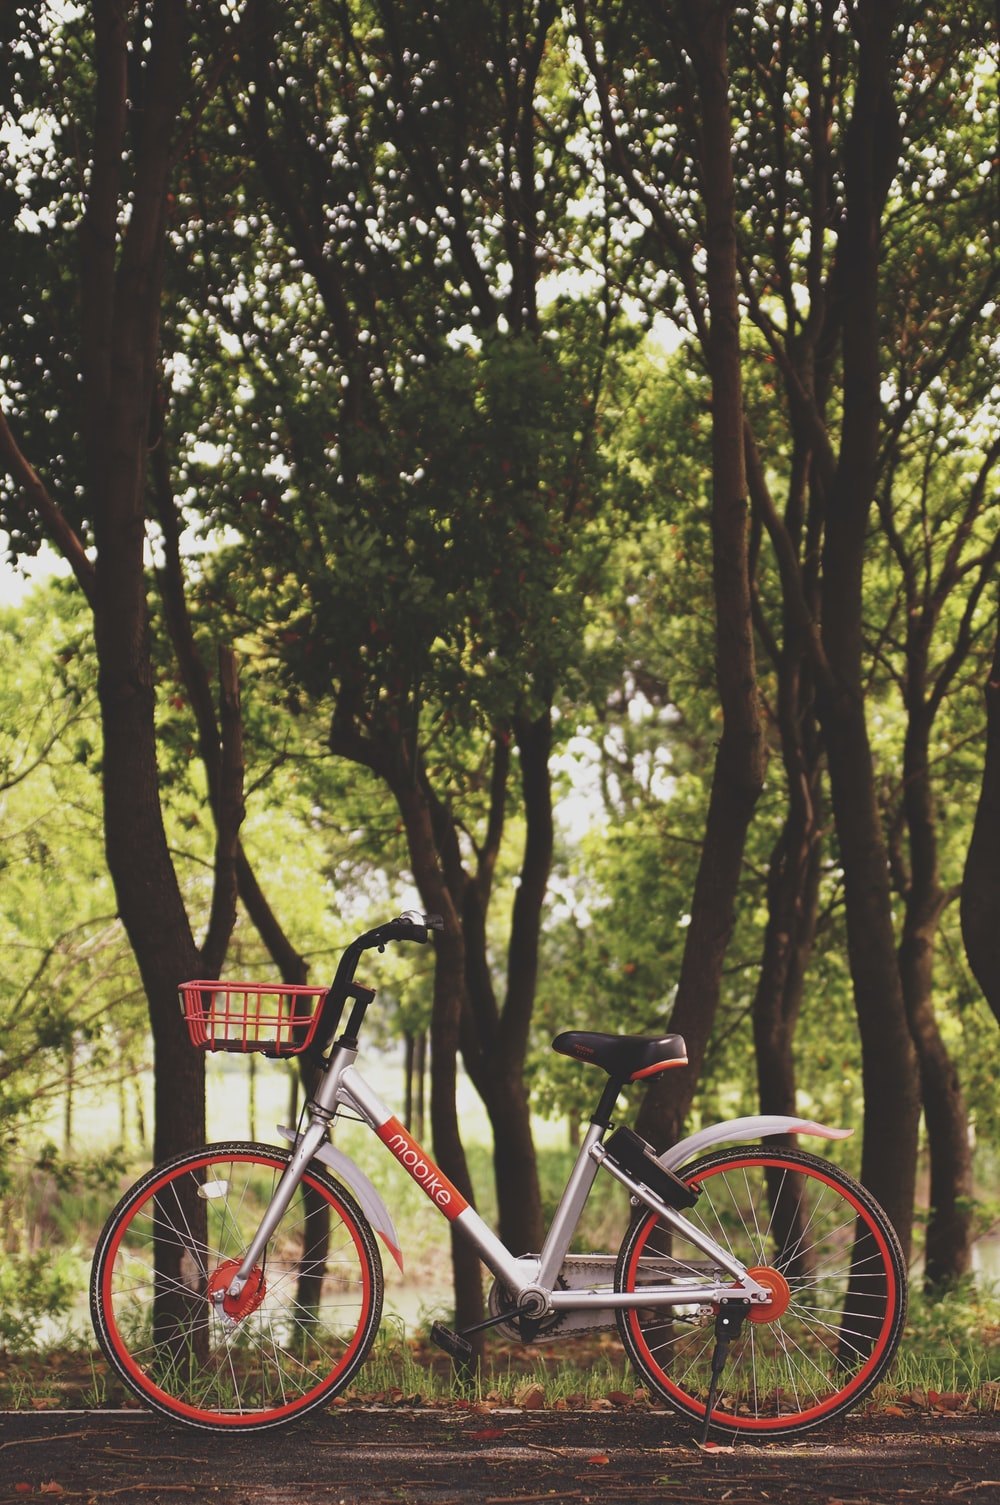 photography of bike parked near trees